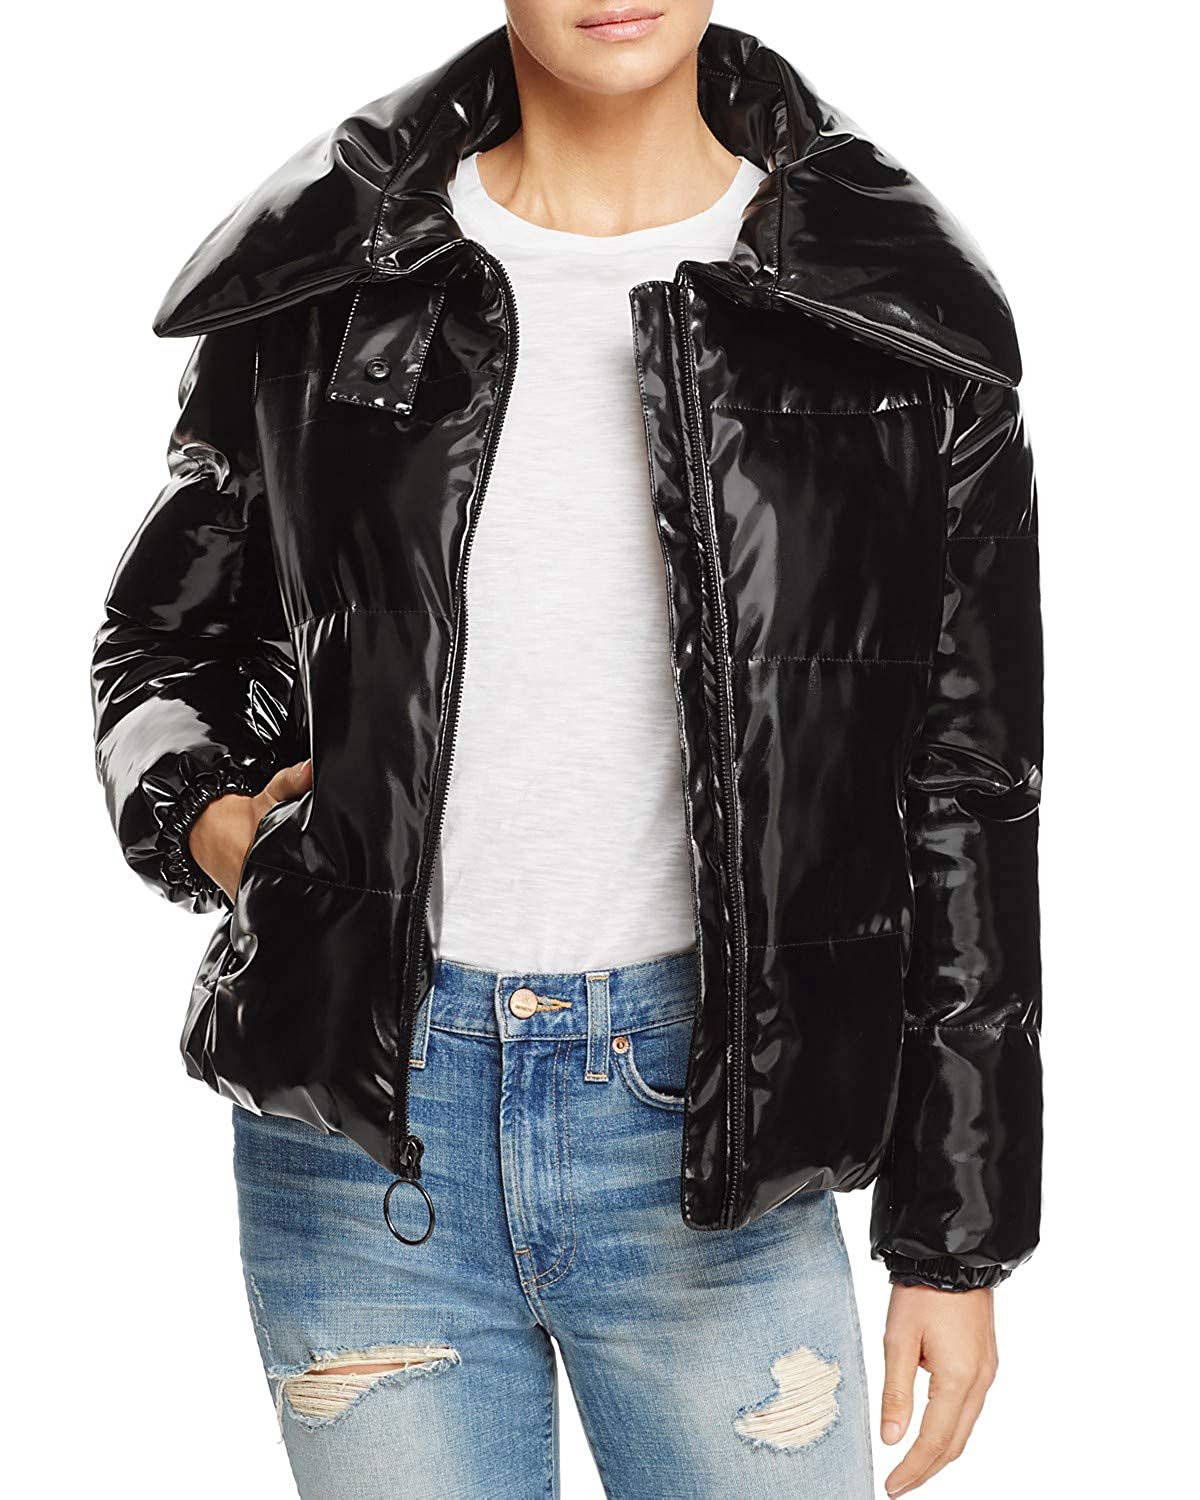 KENDALL + KYLIE Shiny Down Puffer Jacket Coat